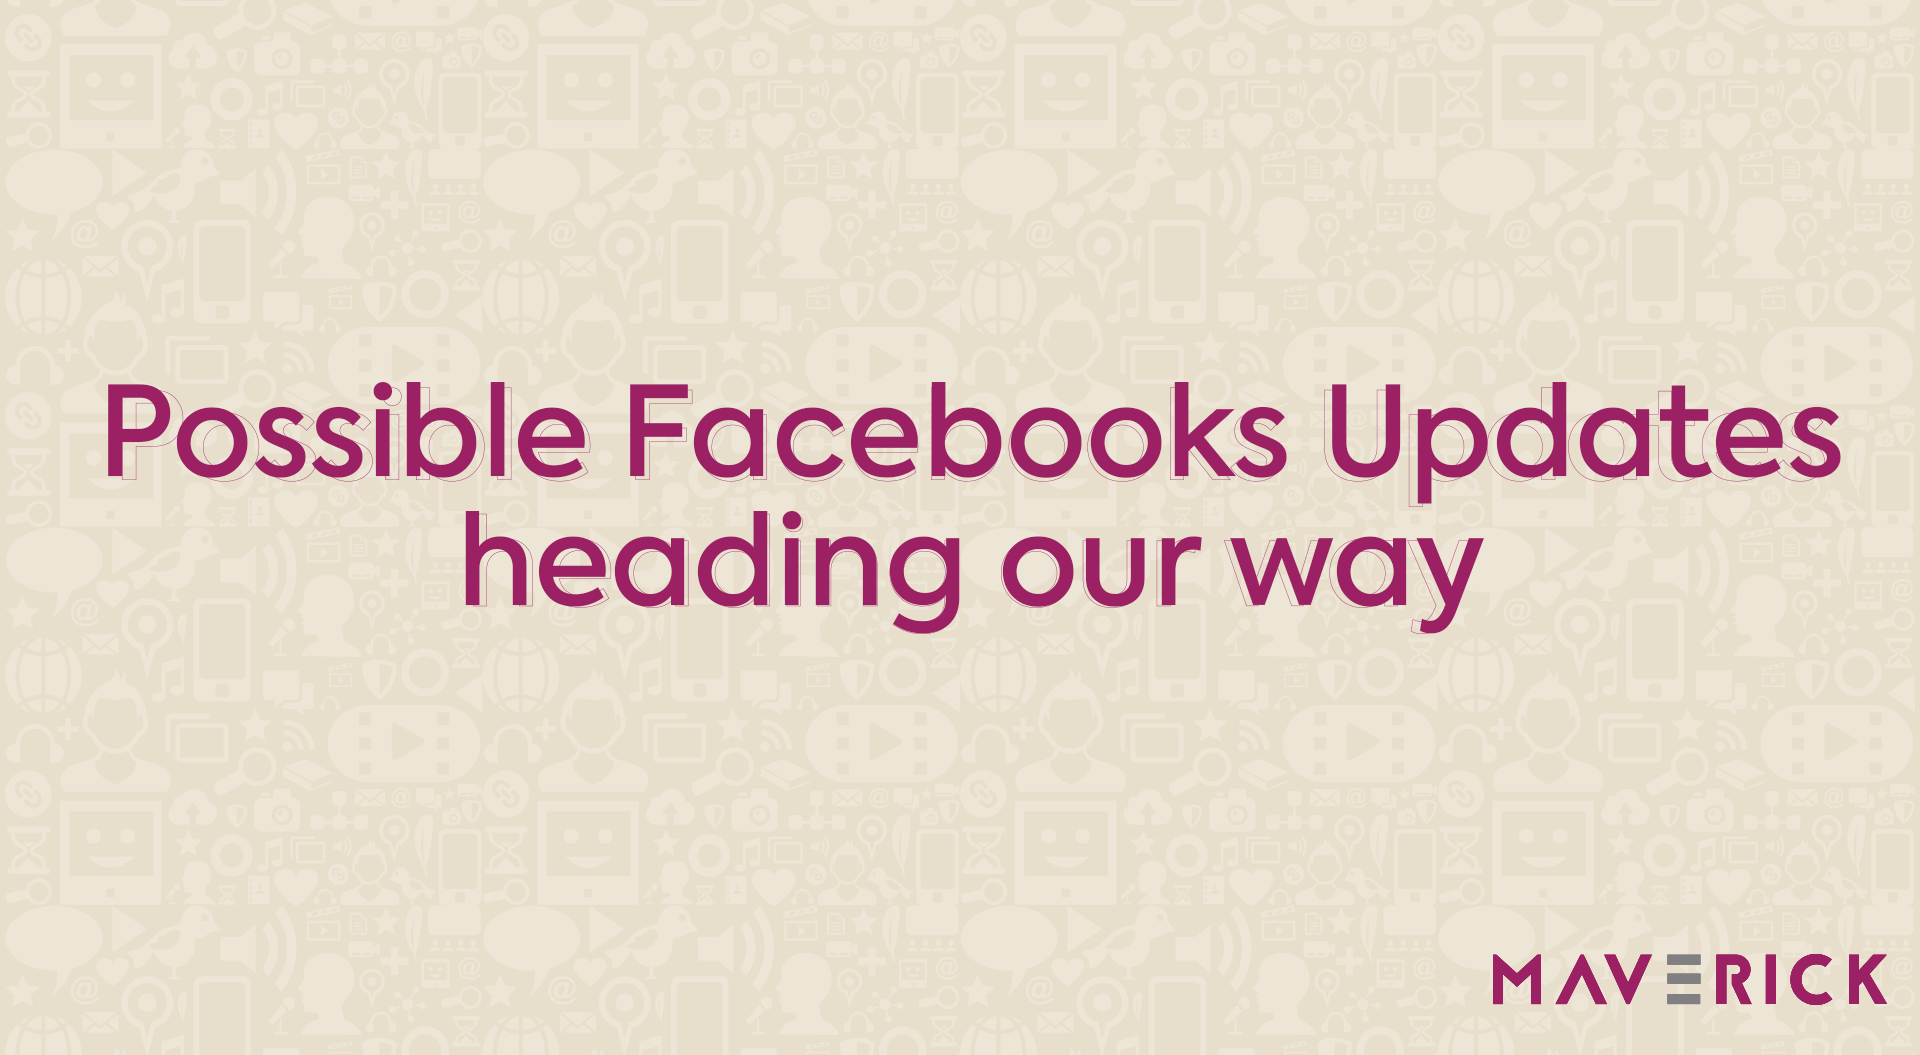 Possible Facebooks updates